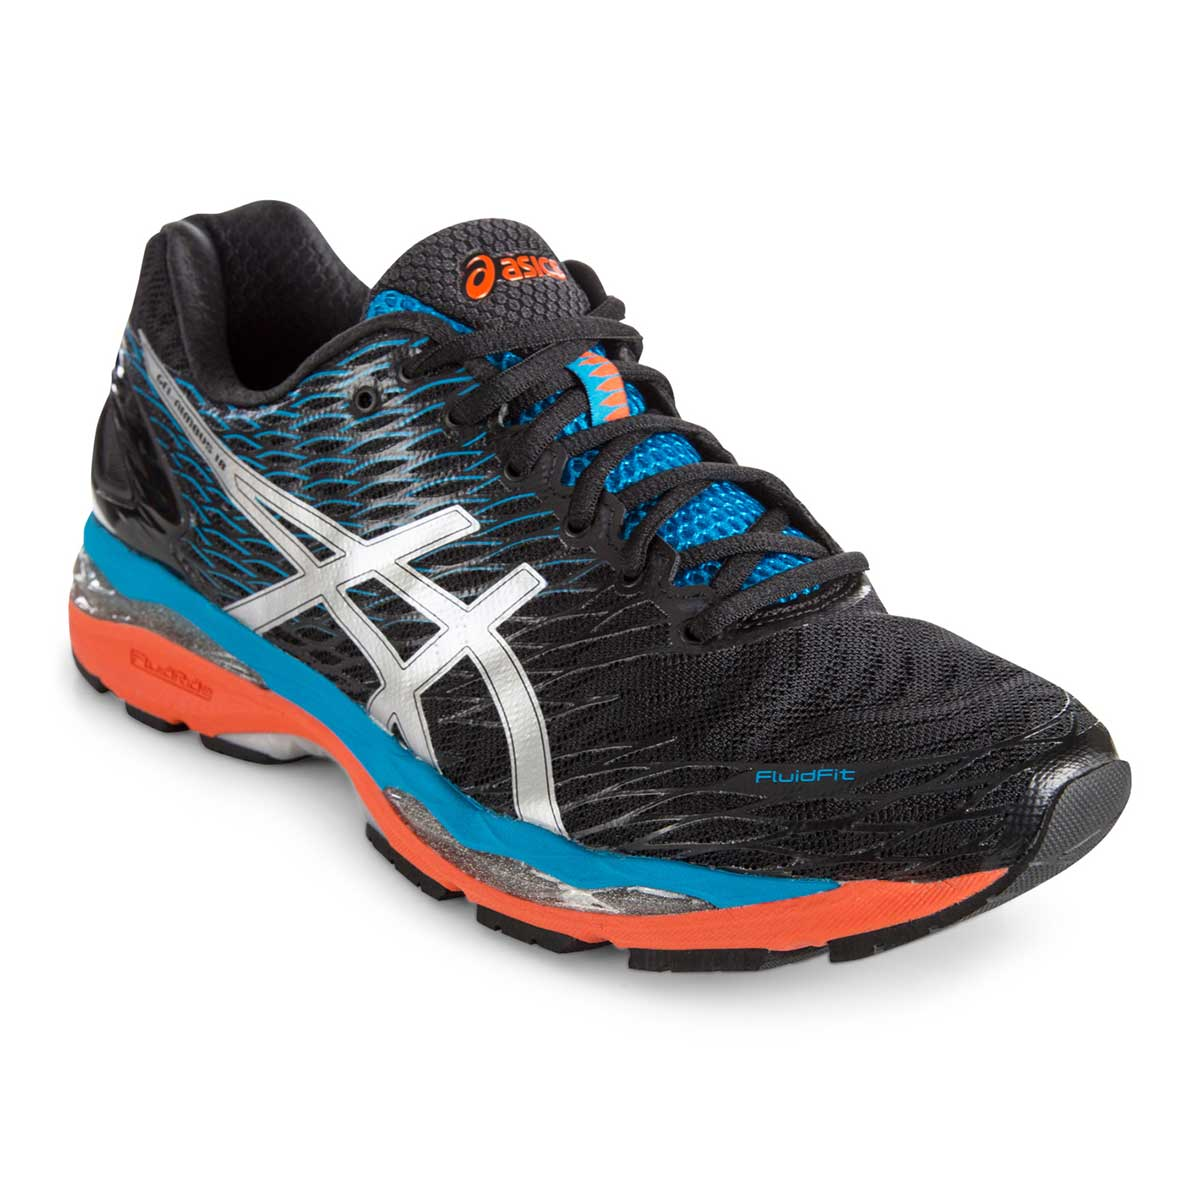 978cfa9d14b198 Buy Asics Gel-Nimbus 18 Running Shoes (Onyx/Silver/Blue Jewel) Online